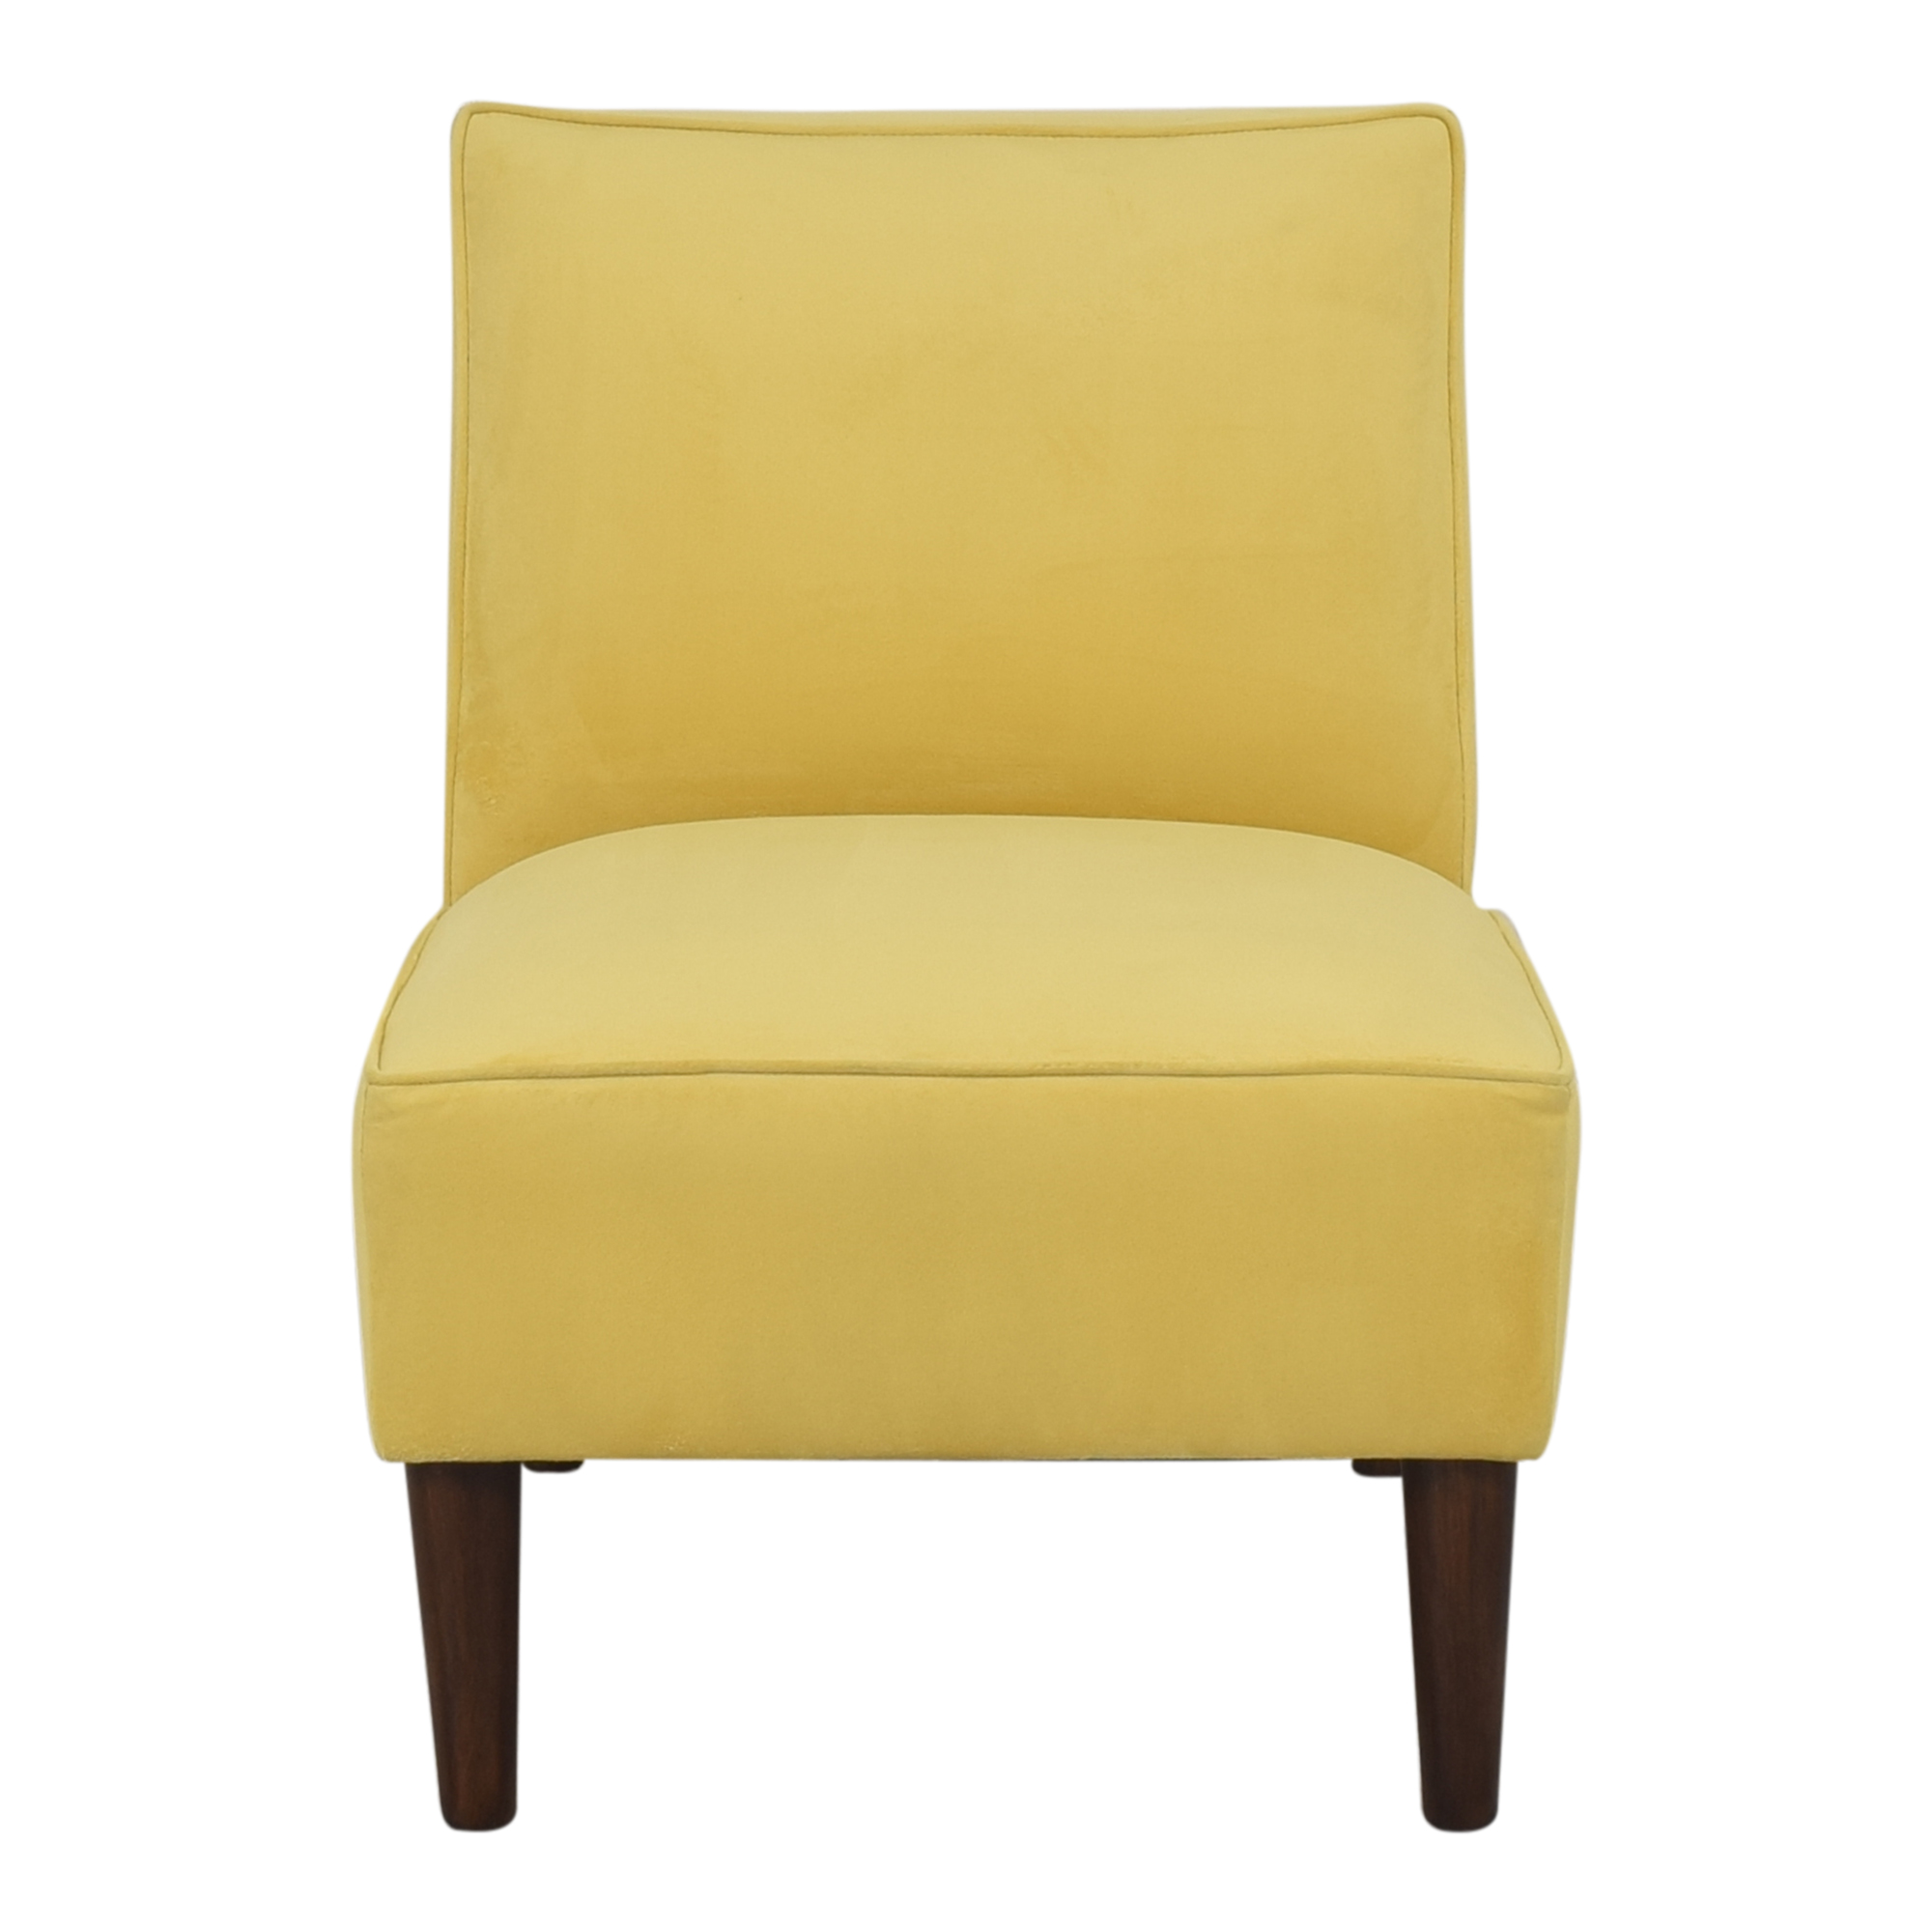 The Inside The Inside Slipper Chair yellow